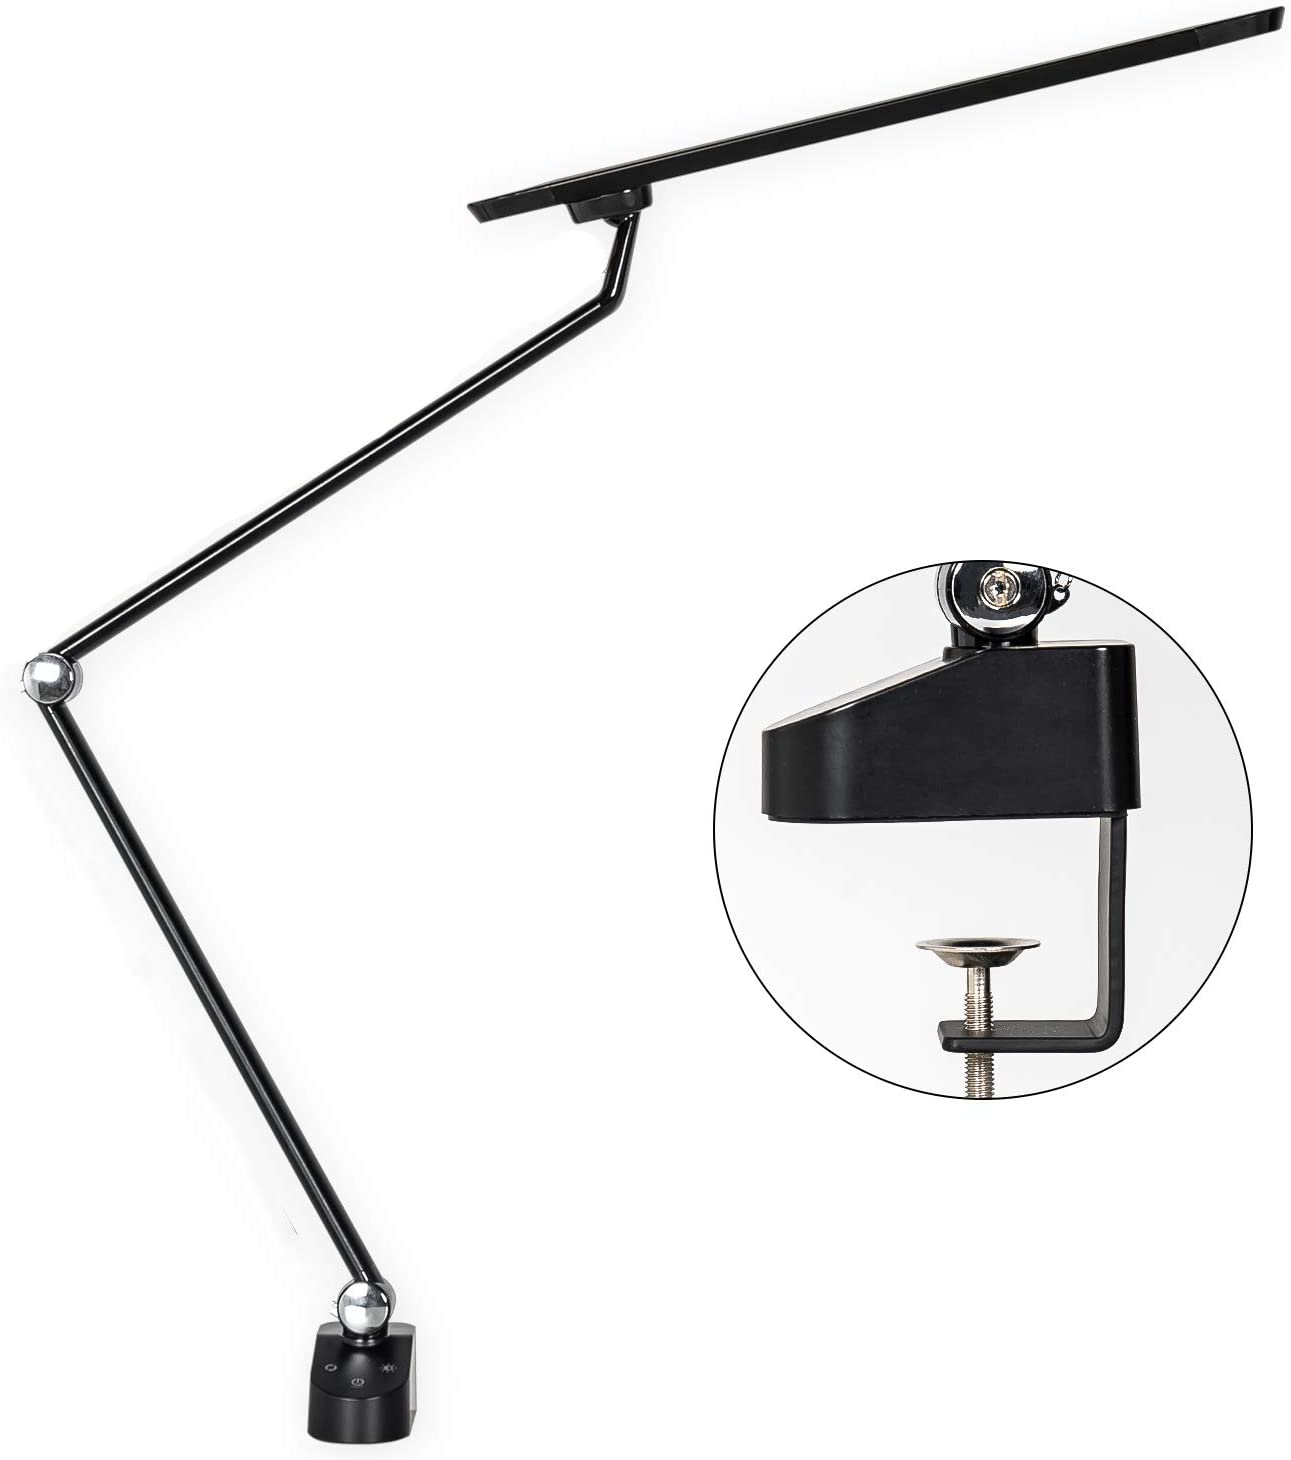 Amico 11W LED Architect Desk Lamp Adjustable Clamp Lamp Metal Swing Arm Task Lamp with clamp, Eye-Protective Touch Control Gradural Dimming for Office Craft Studio Workbench Architect